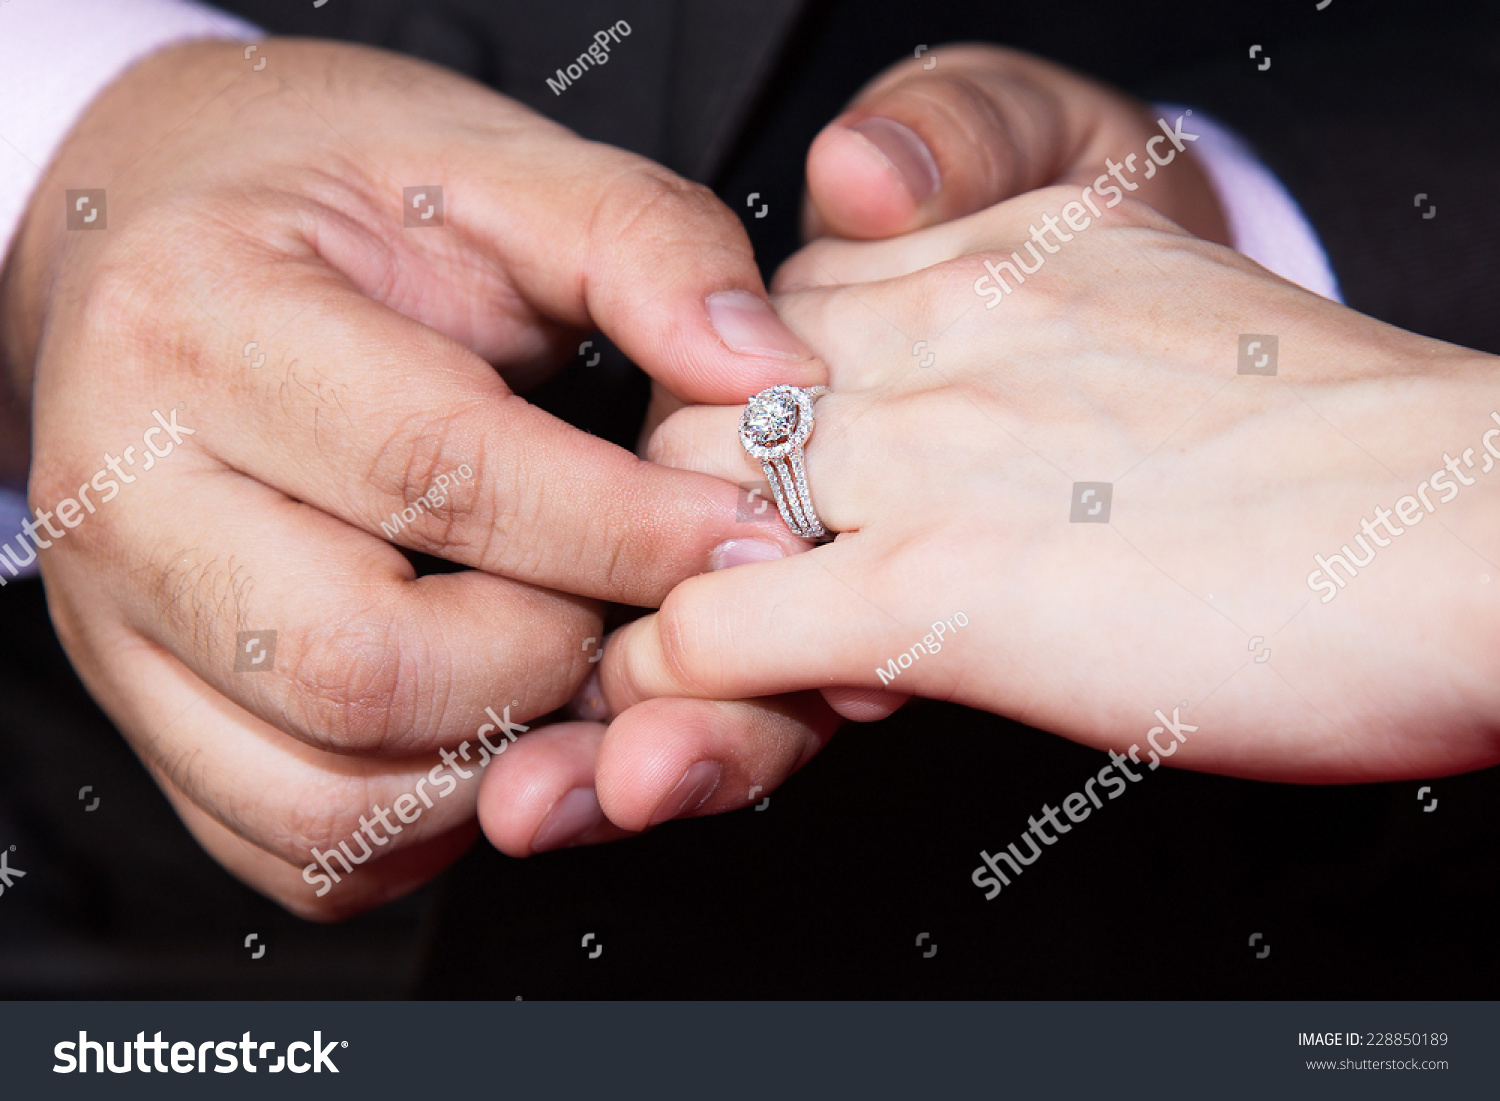 Closeup Hands Bridal Couple Wedding Rings Stock Photo (Download Now ...